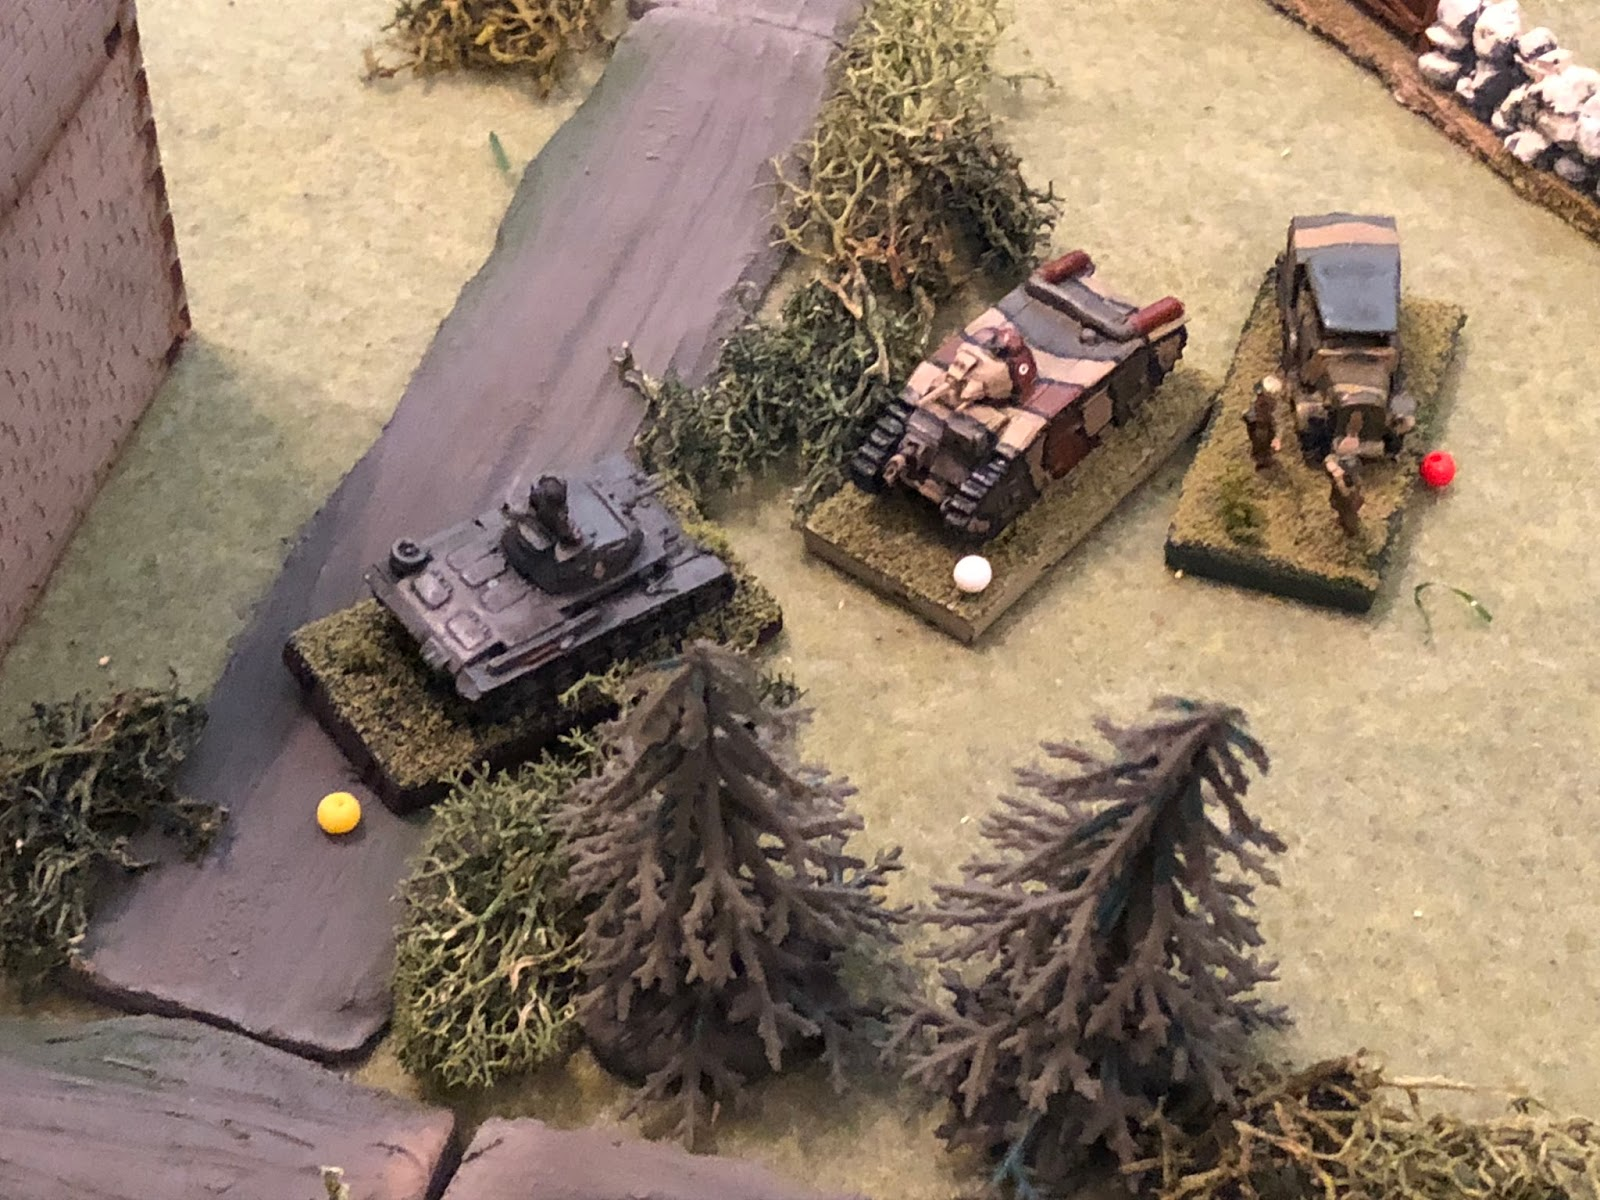 Lt Loeb throws caution to the wind, charging his tank almost nose to nose with the Char B!  The French turret begins to swivel towards the German panzer as Lt Loeb's gunner pumps round after round at the enemy tank's gun barrels and vision slits...